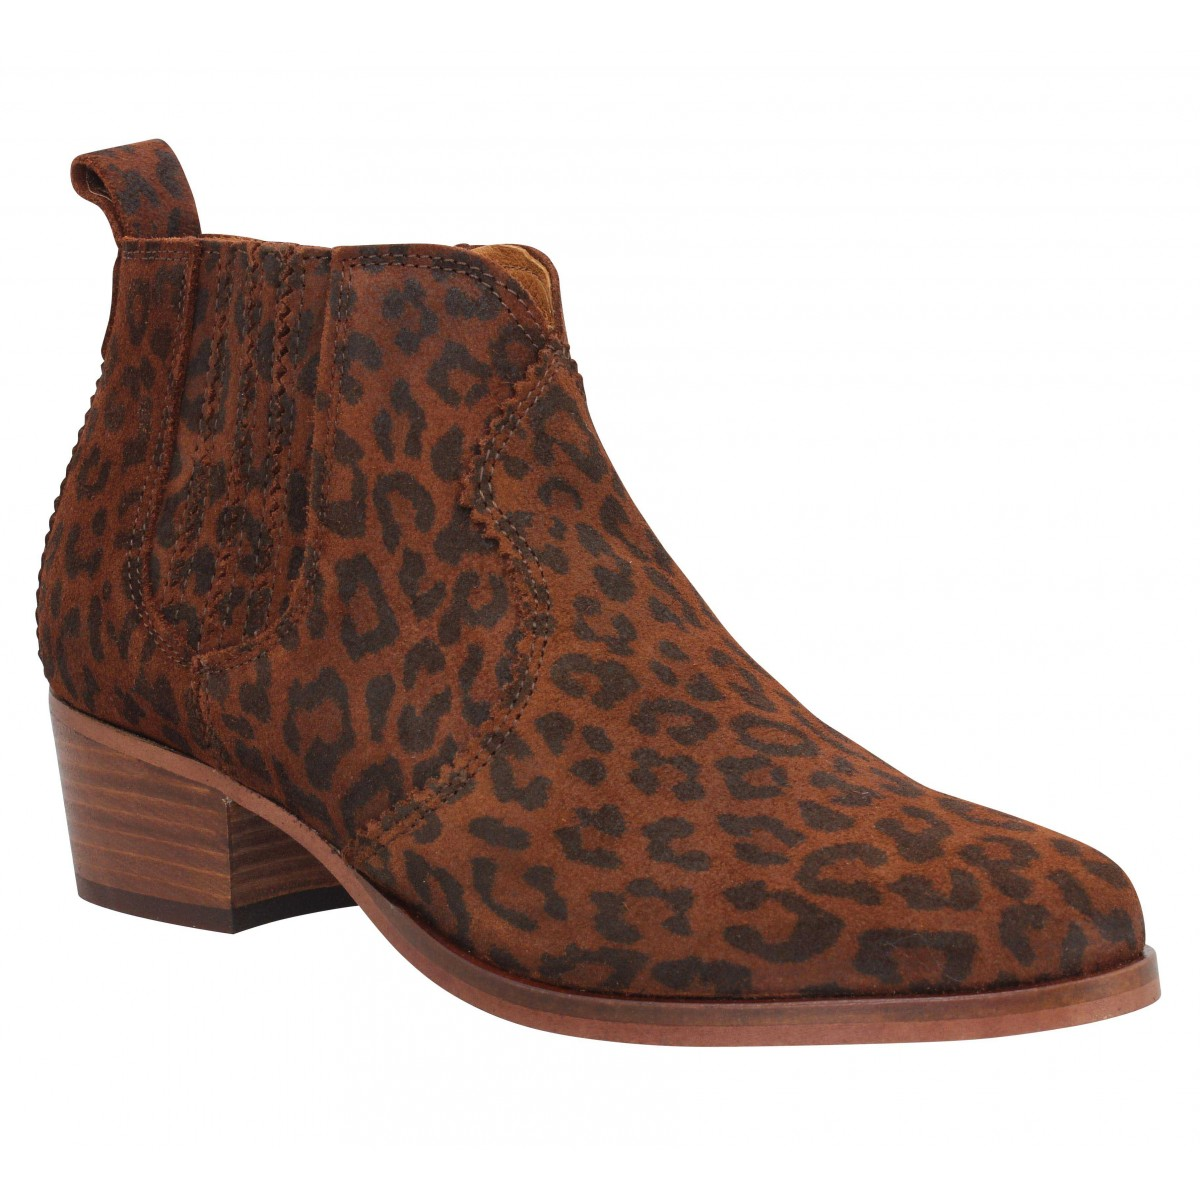 Bottines SCHMOOVE Polly Boots suede Femme Whisky